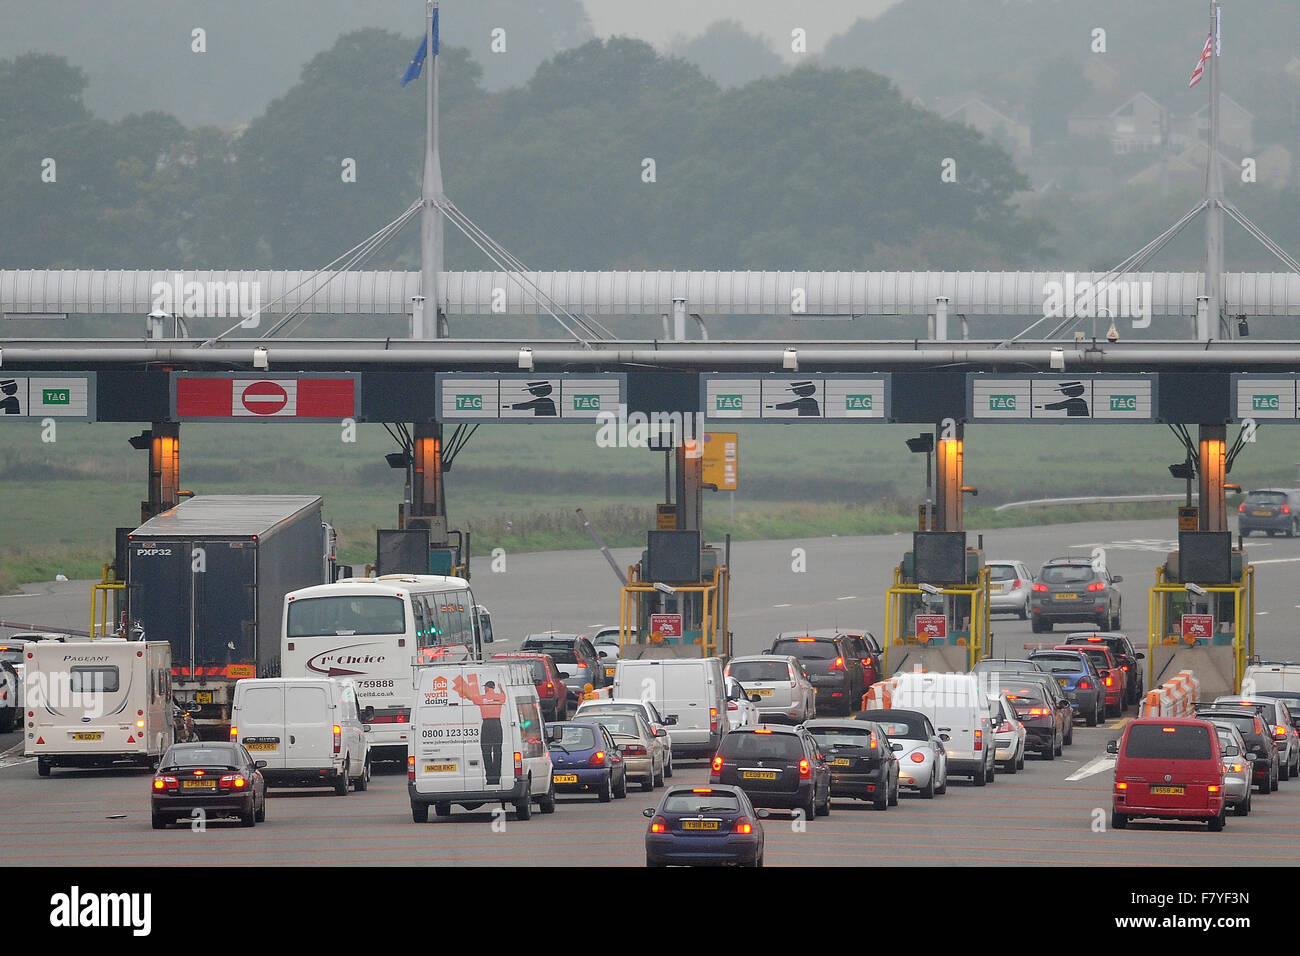 The Severn Bridge Tolls in South Wales. - Stock Image